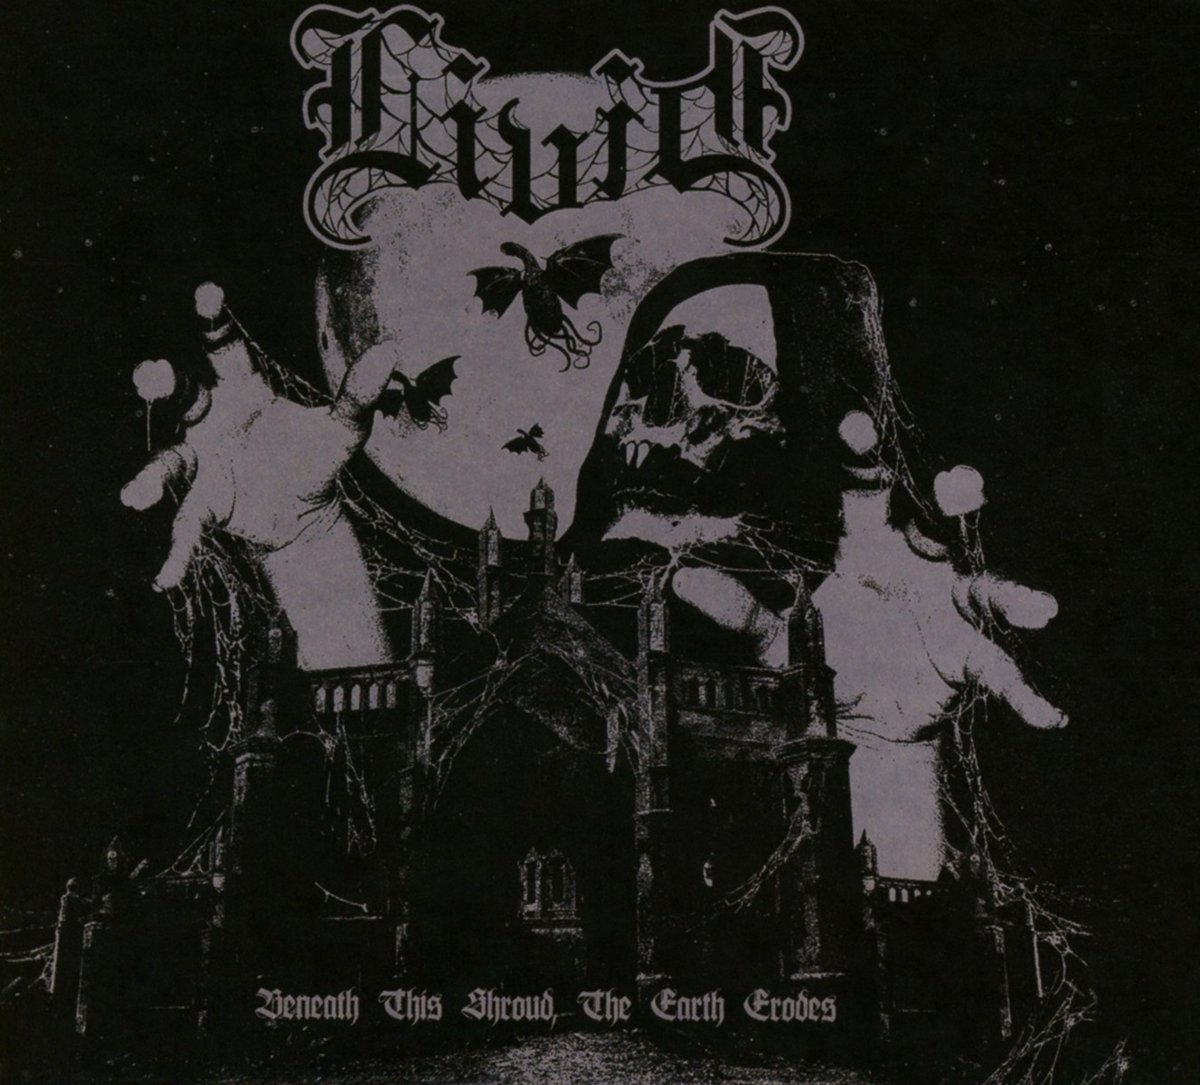 CD : Livid (Mn) - Beneath This Shroud, The Earth Erodes (CD)